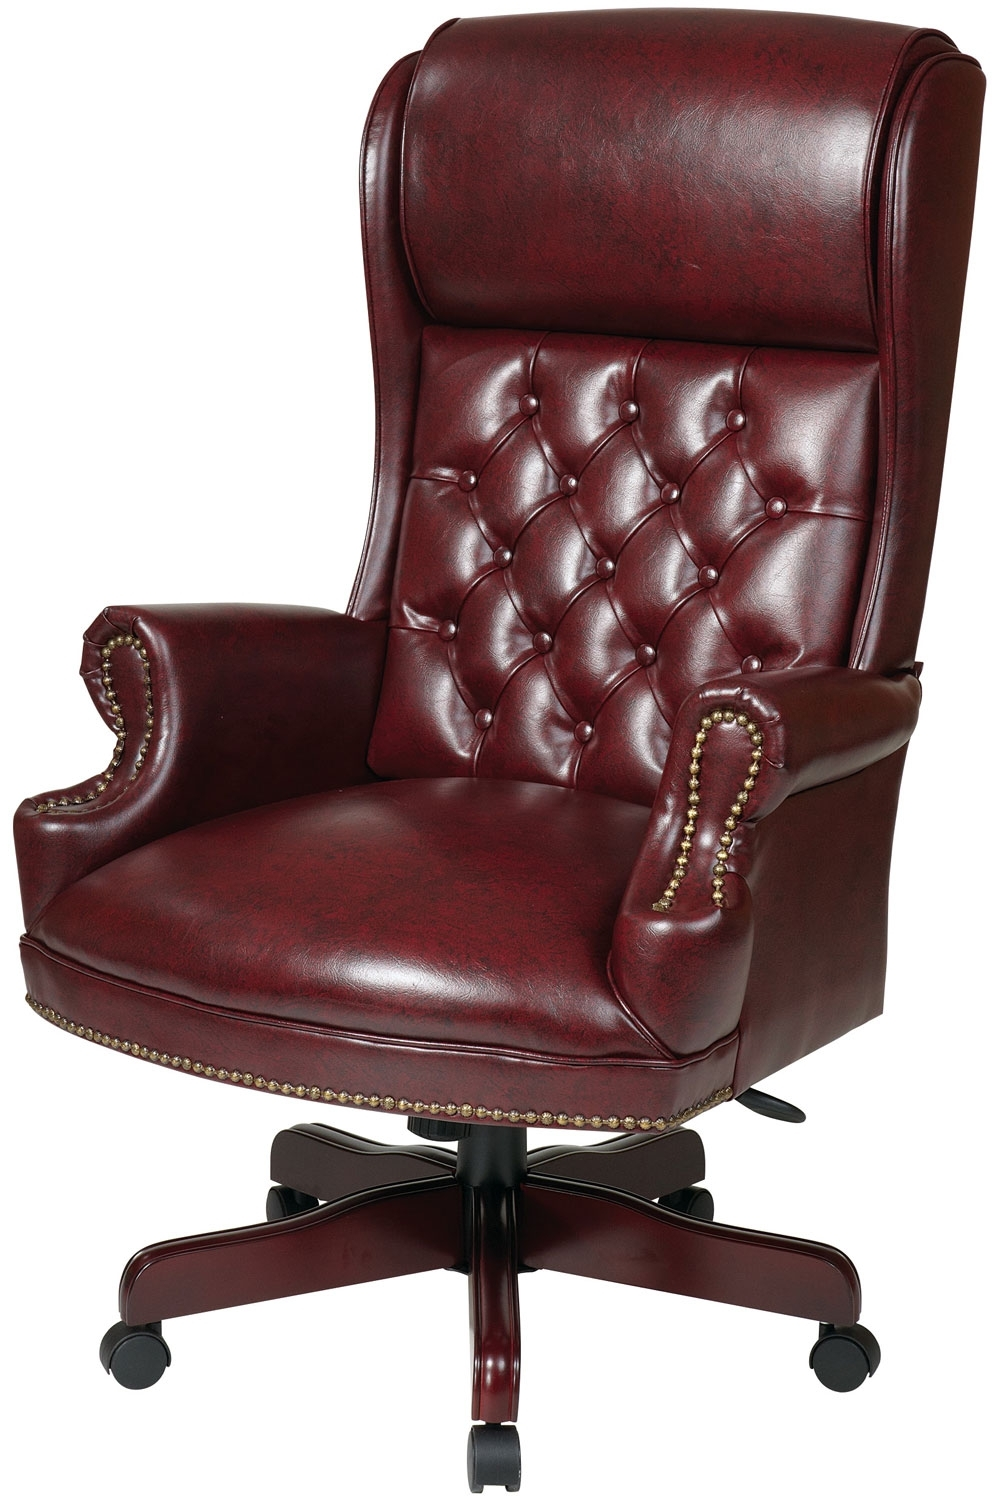 Executive Office Chairs Regarding Fashionable Tex228 Jt4 Office Star – Deluxe High Back Traditional Executive (View 6 of 20)